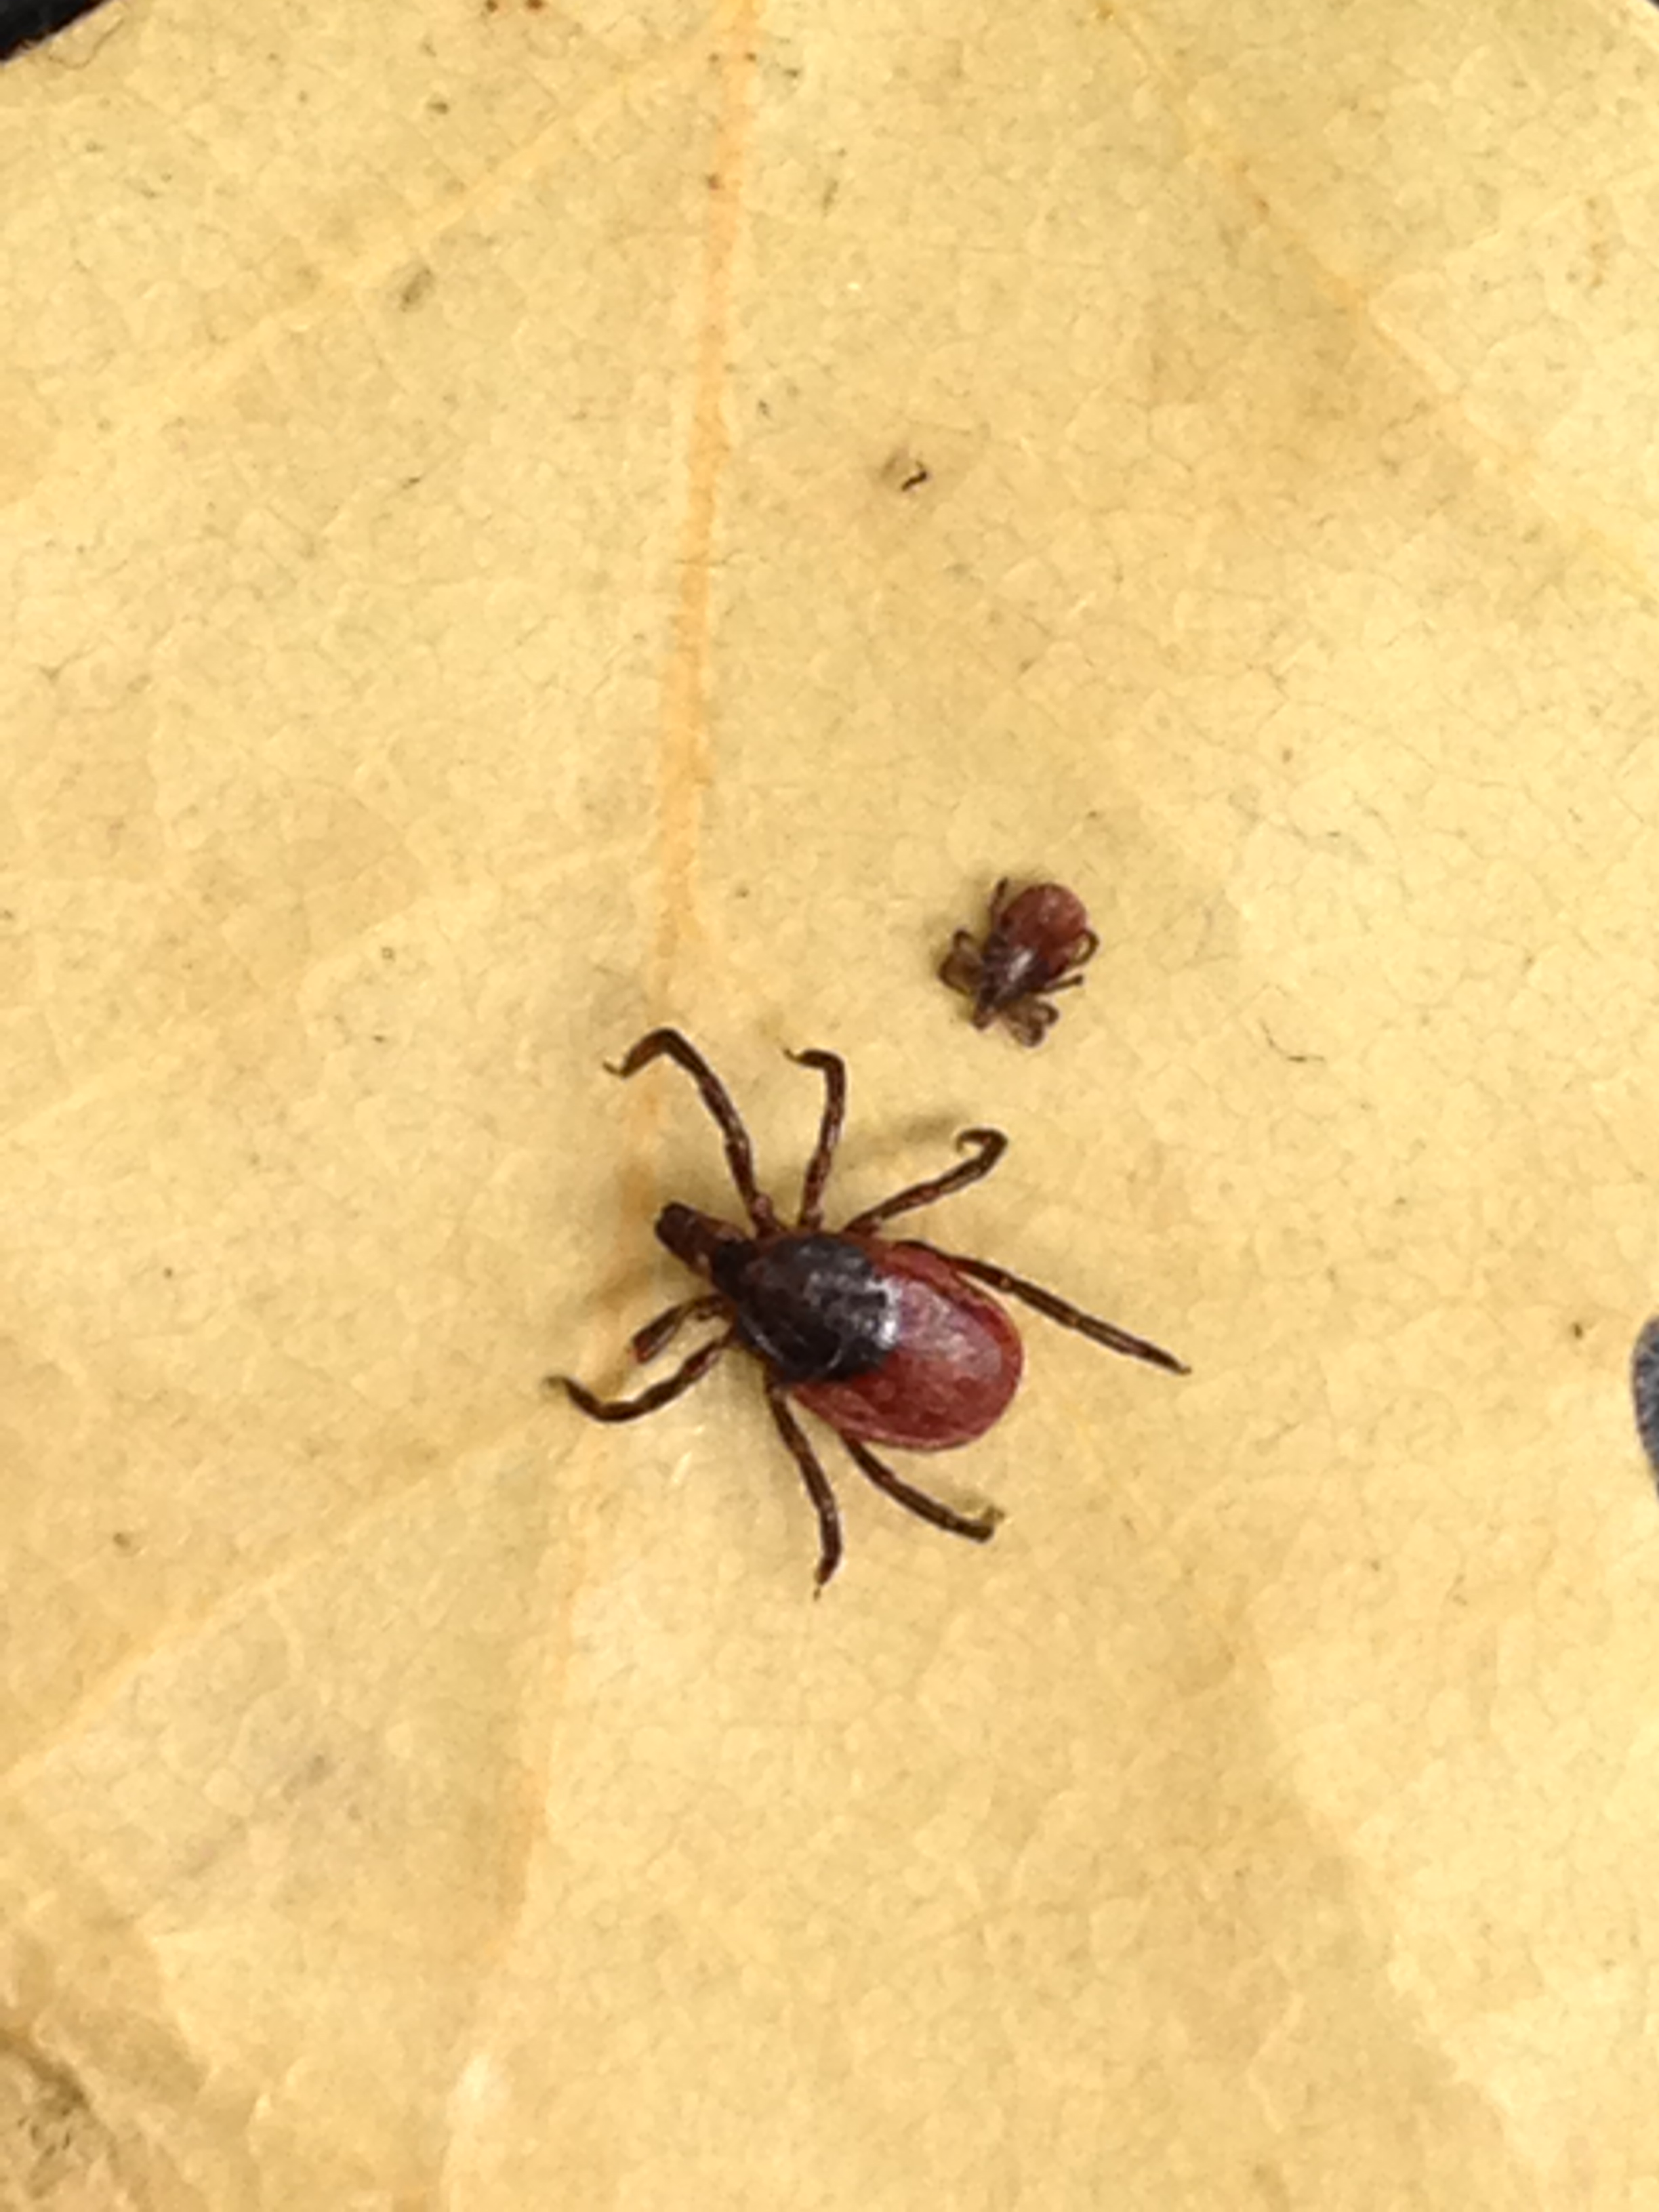 Common Ticks In Alameda County Vector Control Services